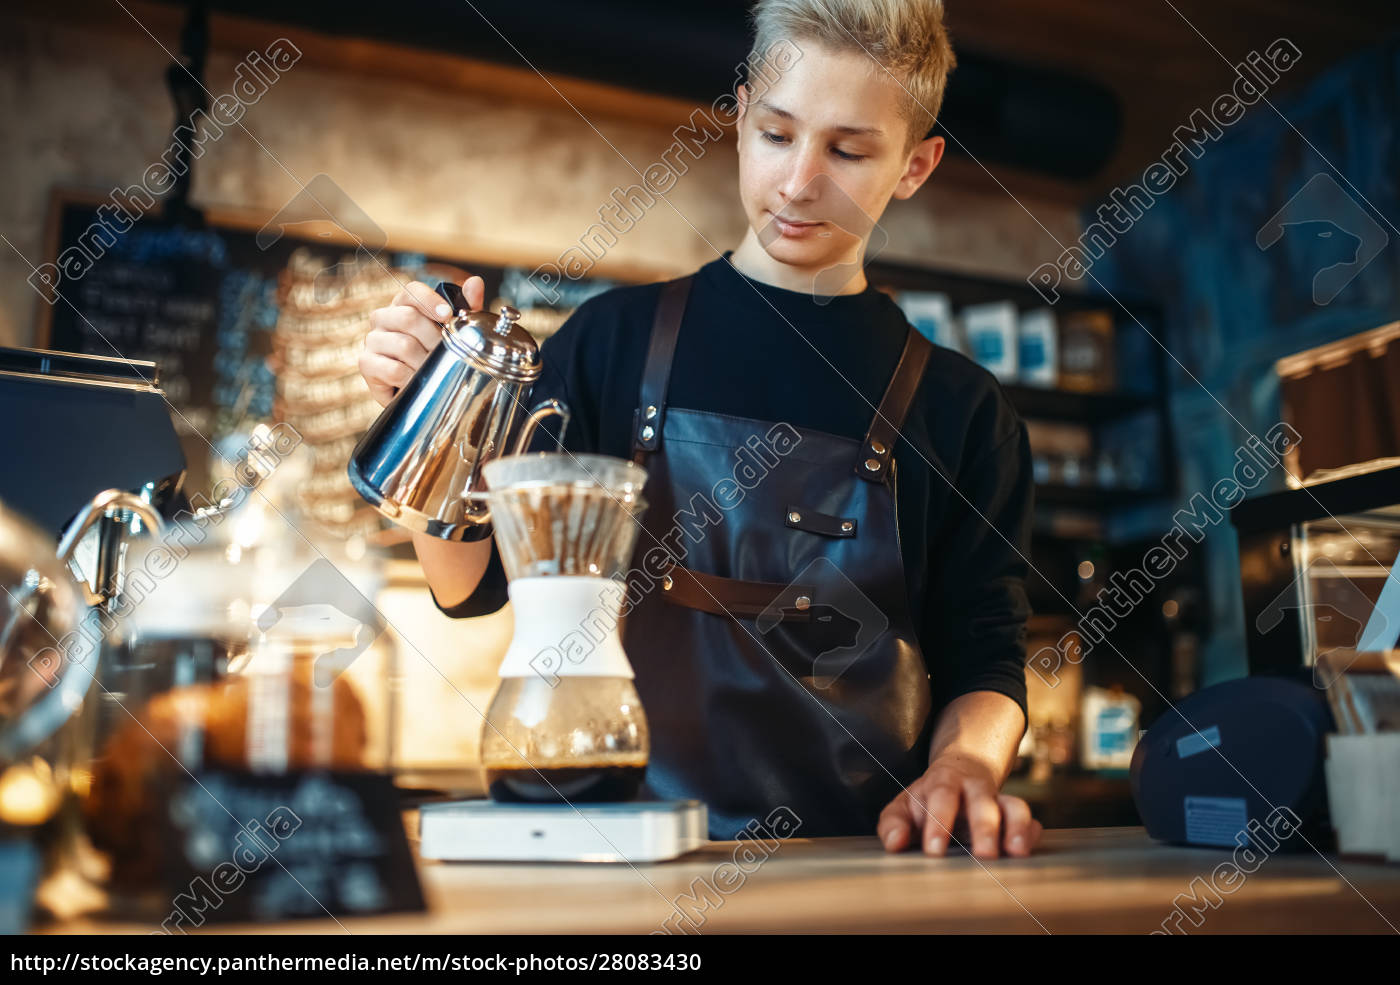 young, male, barista, makes, latte - 28083430